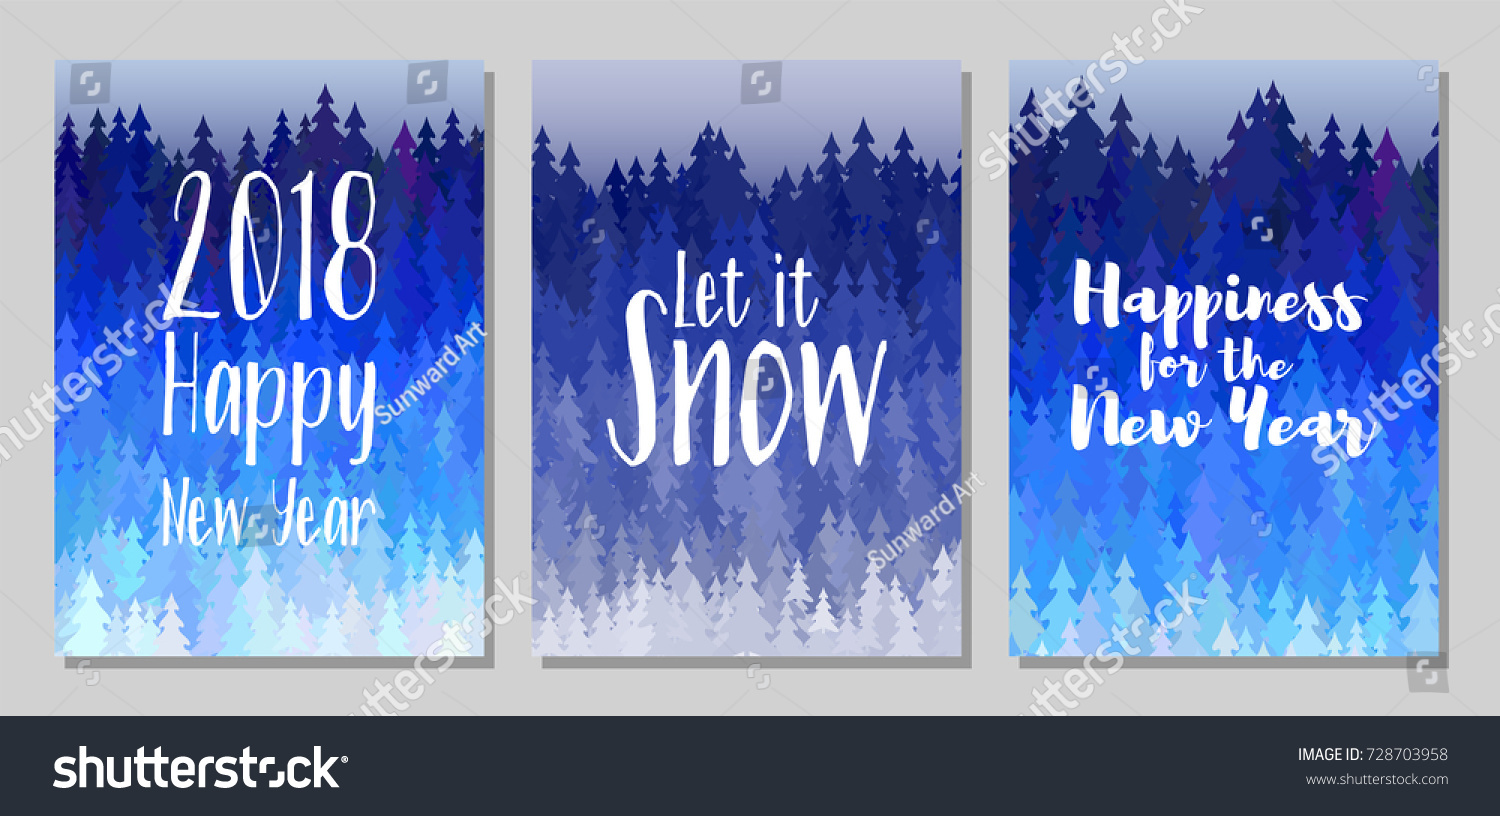 2018 happy new year card let it snow happiness wish winter forest panorama